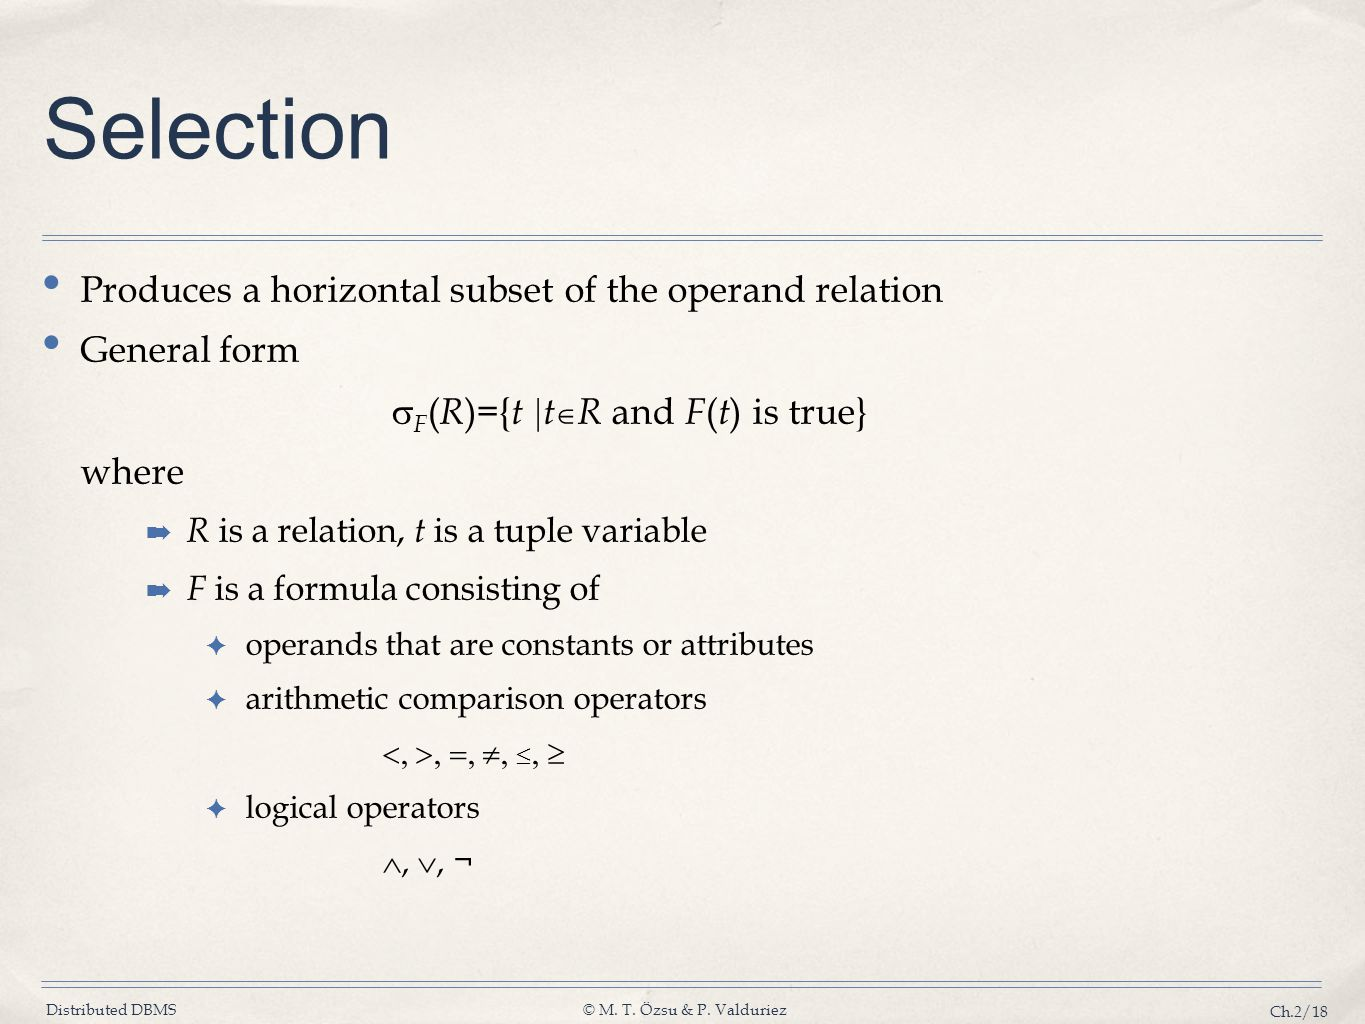 Distributed DBMS© M. T. Özsu & P. Valduriez Ch.2/18 Selection Produces a horizontal subset of the operand relation General form F ( R )={ t t R and F